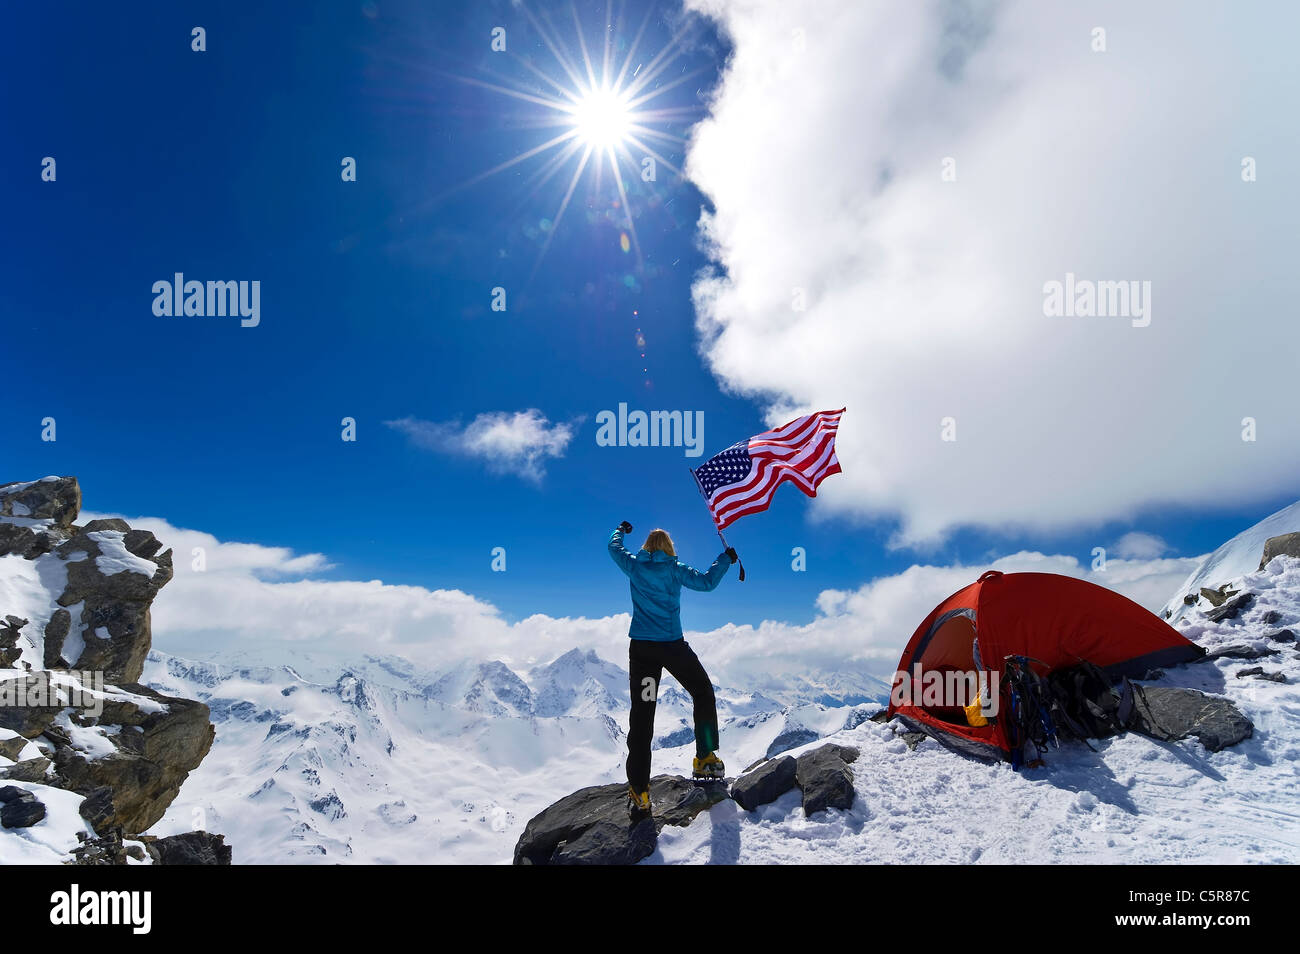 Climber celebrates on top of snowy mountain. - Stock Image